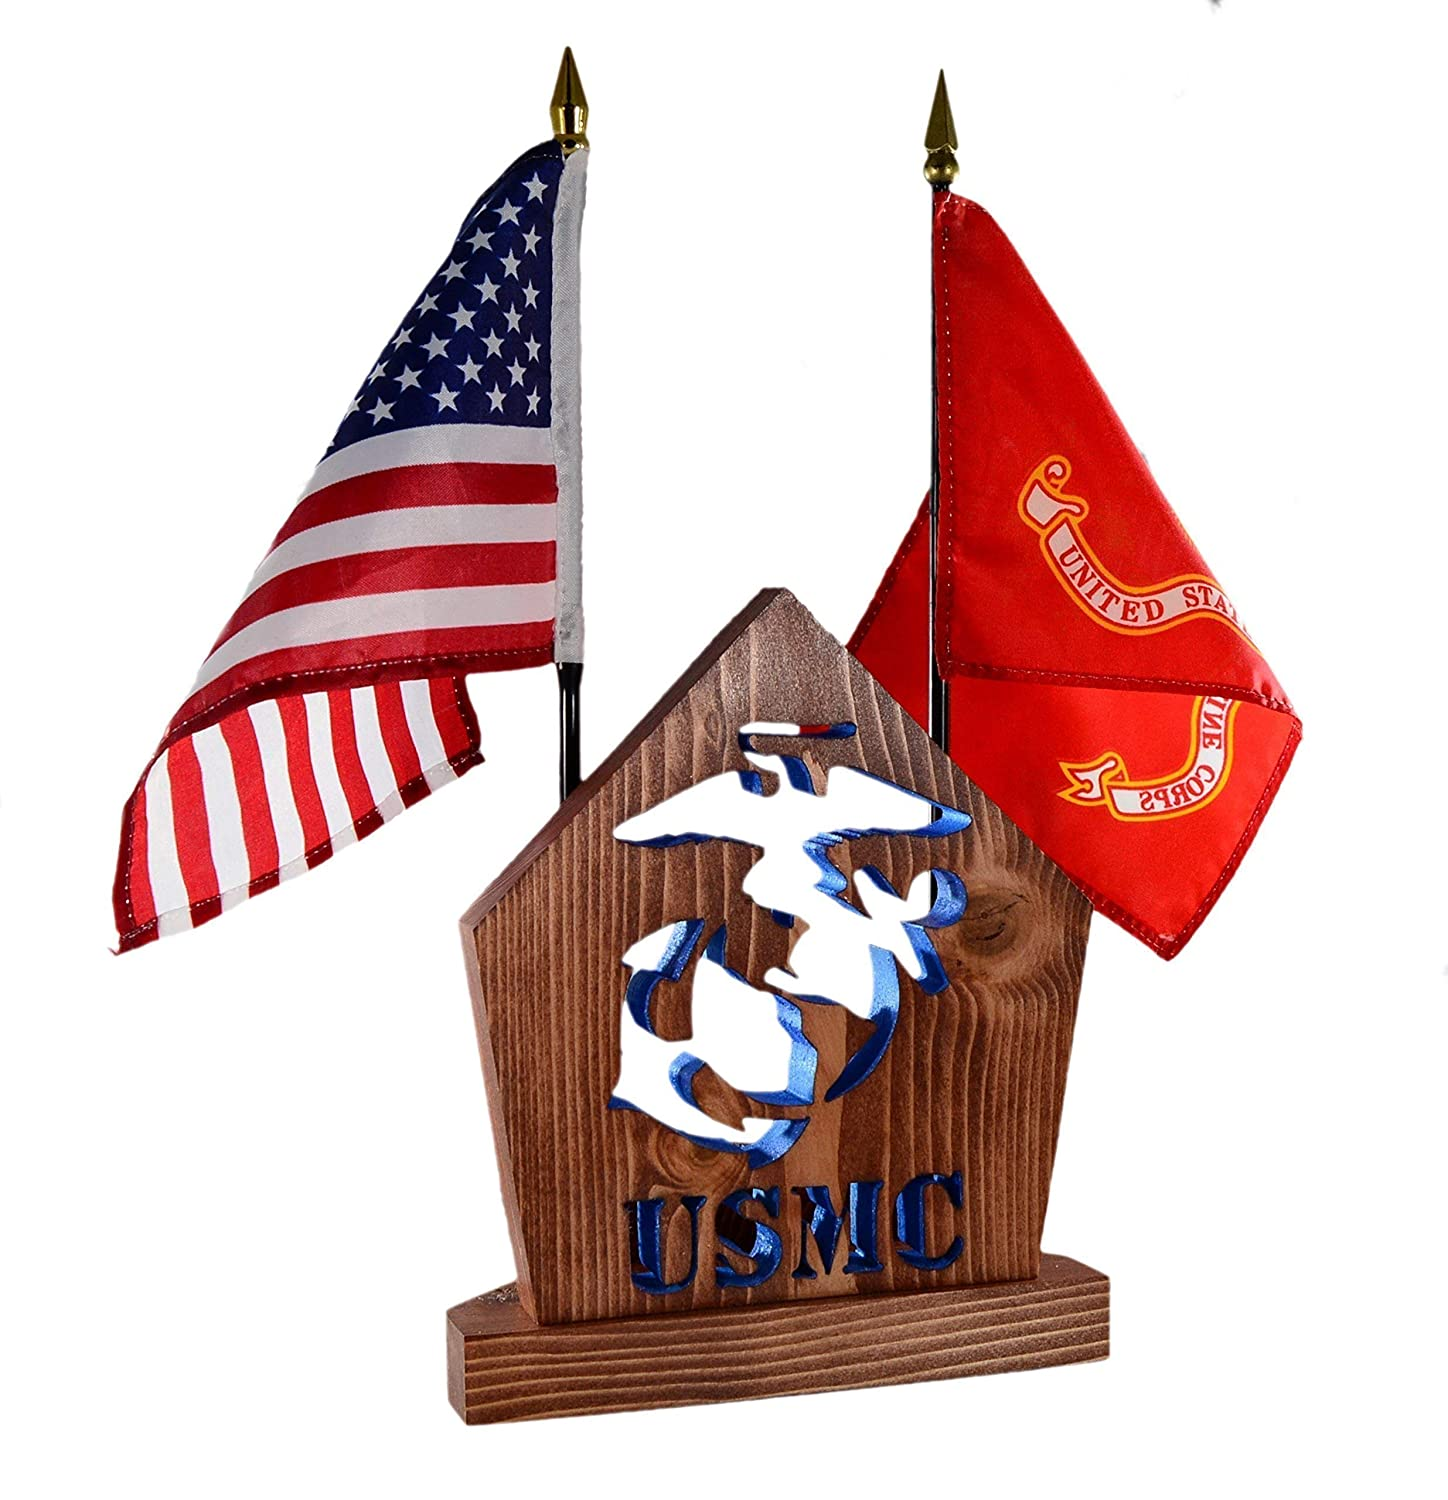 Personalized Gift Set for MARINE Veteran • Military Desk Set Gift • SEMPER FI ○ Desk Set for Him/Her ○ Armed Forces ○USMC Office Accessories ○ DogPound Creations